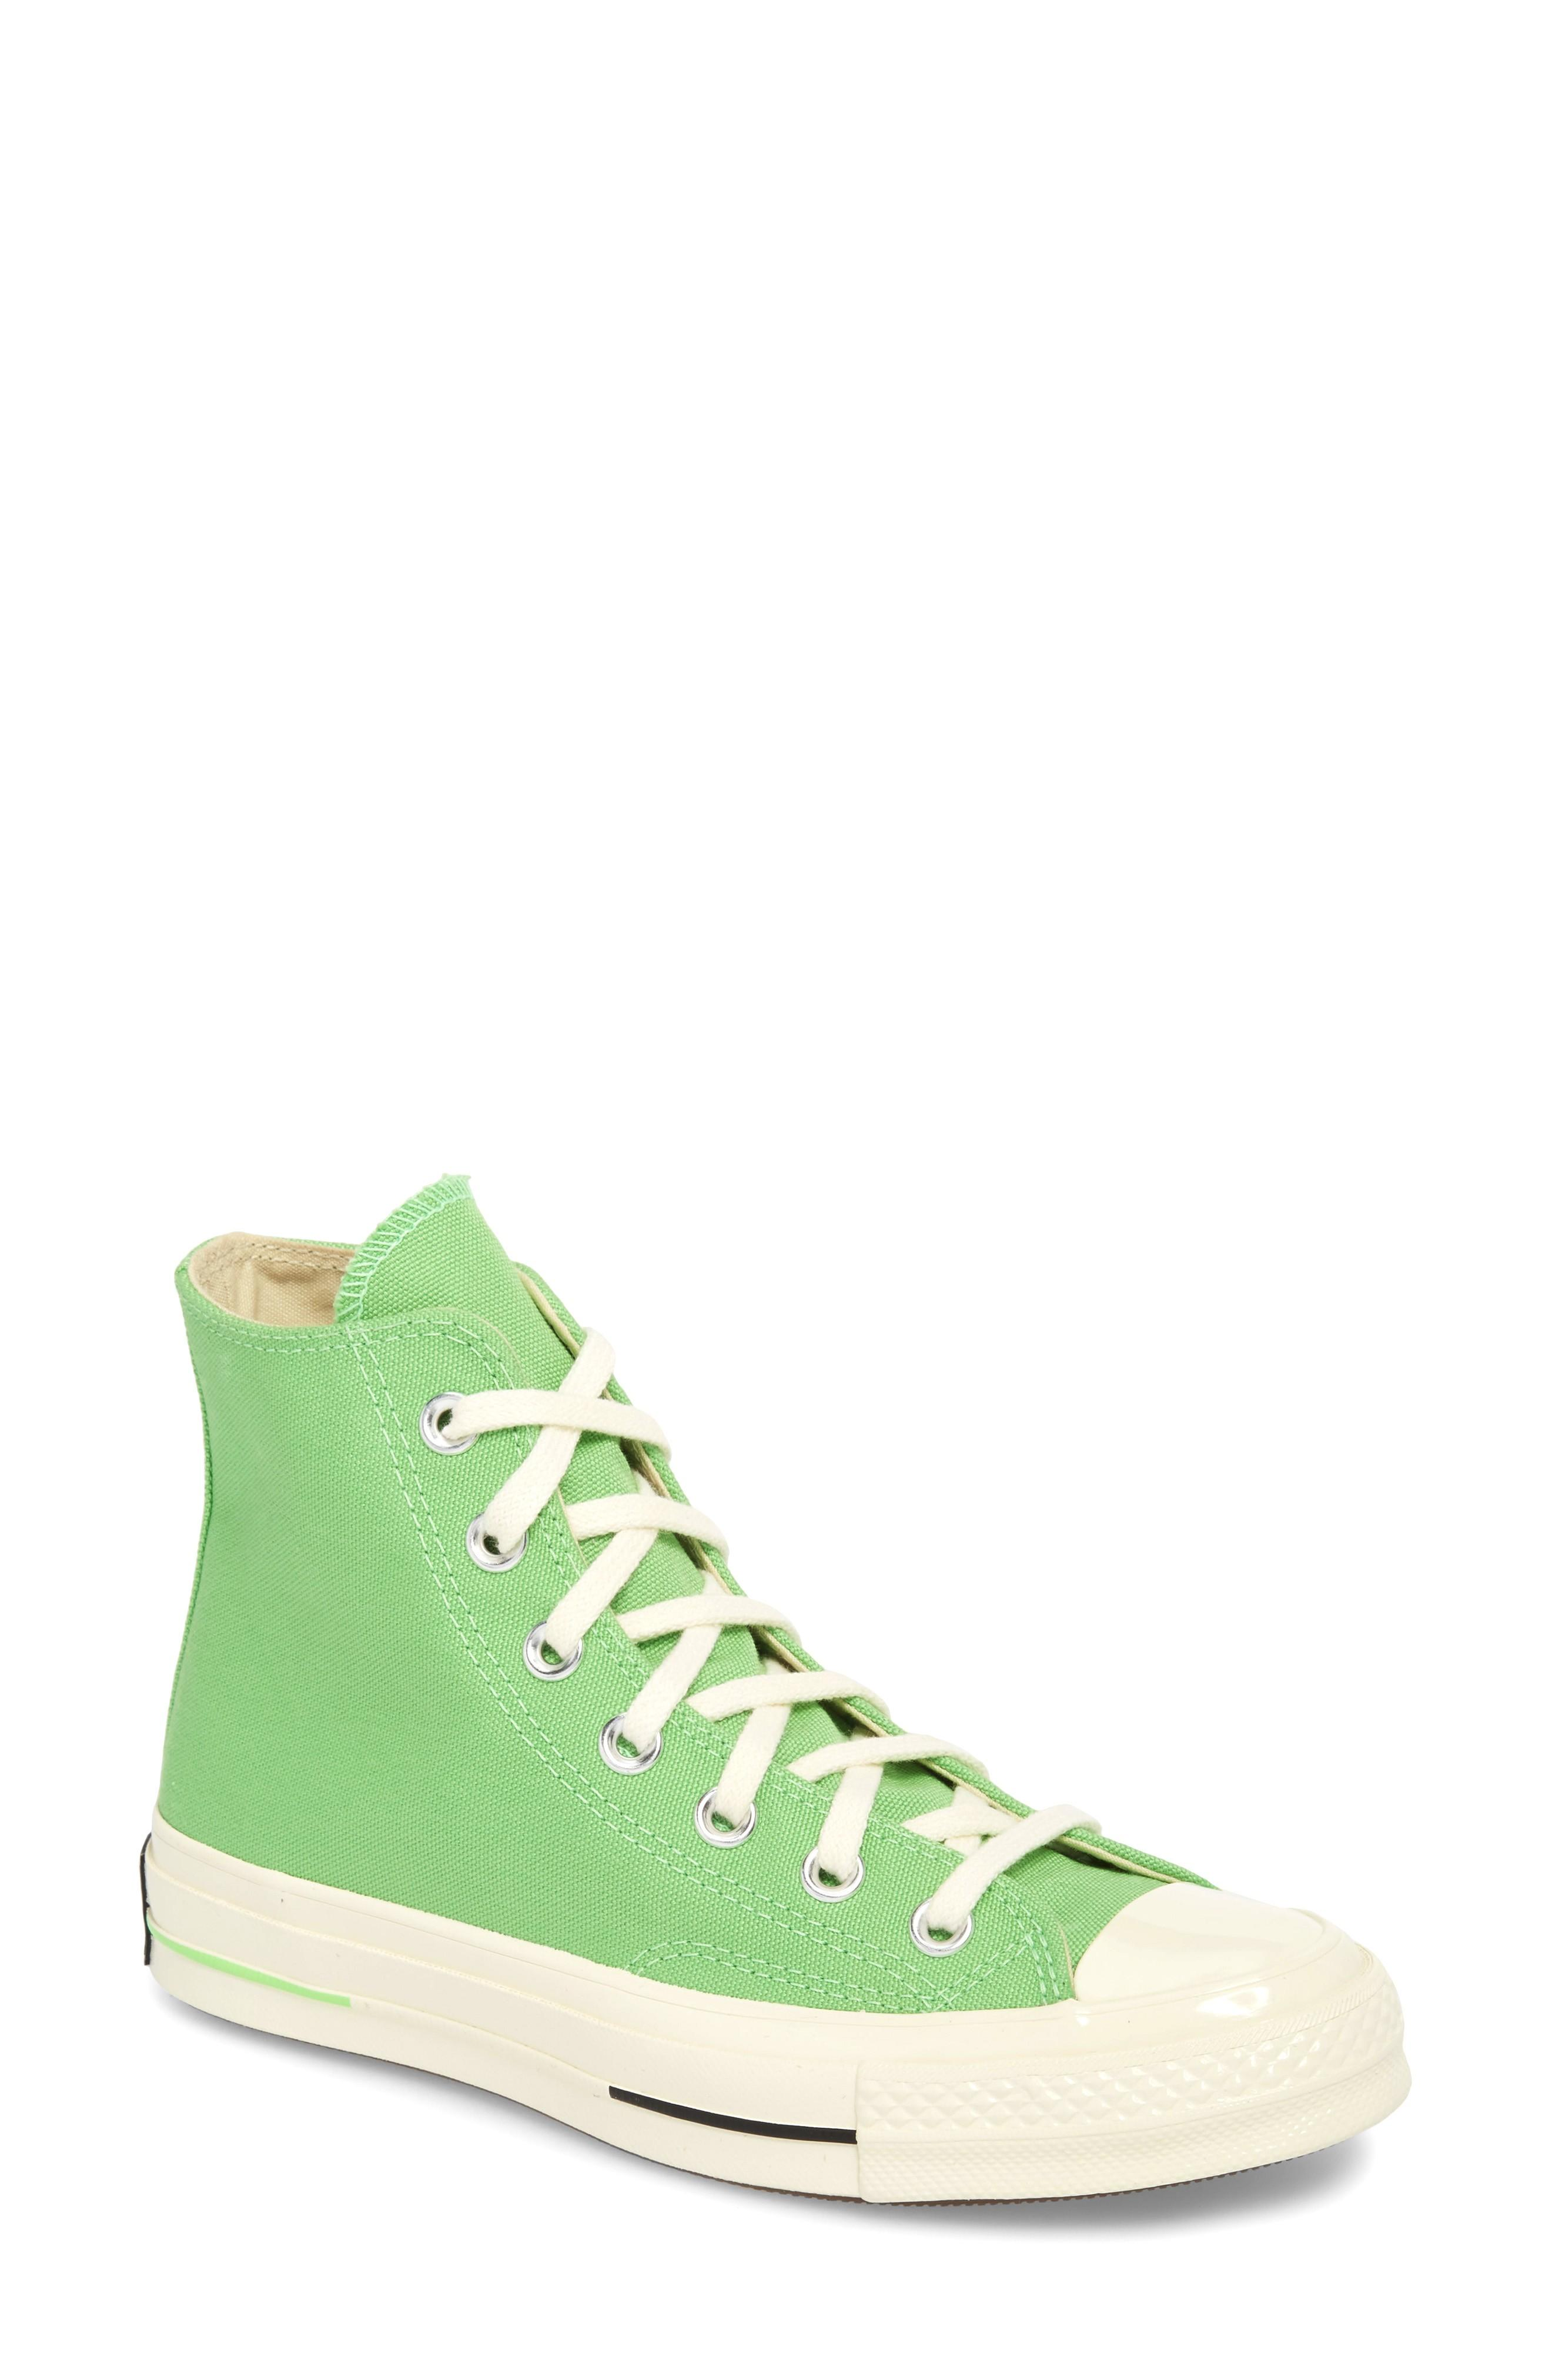 41b5bee15aae6 Converse Chuck Taylor All Star 70 Brights High Top Sneaker In Illusion Green